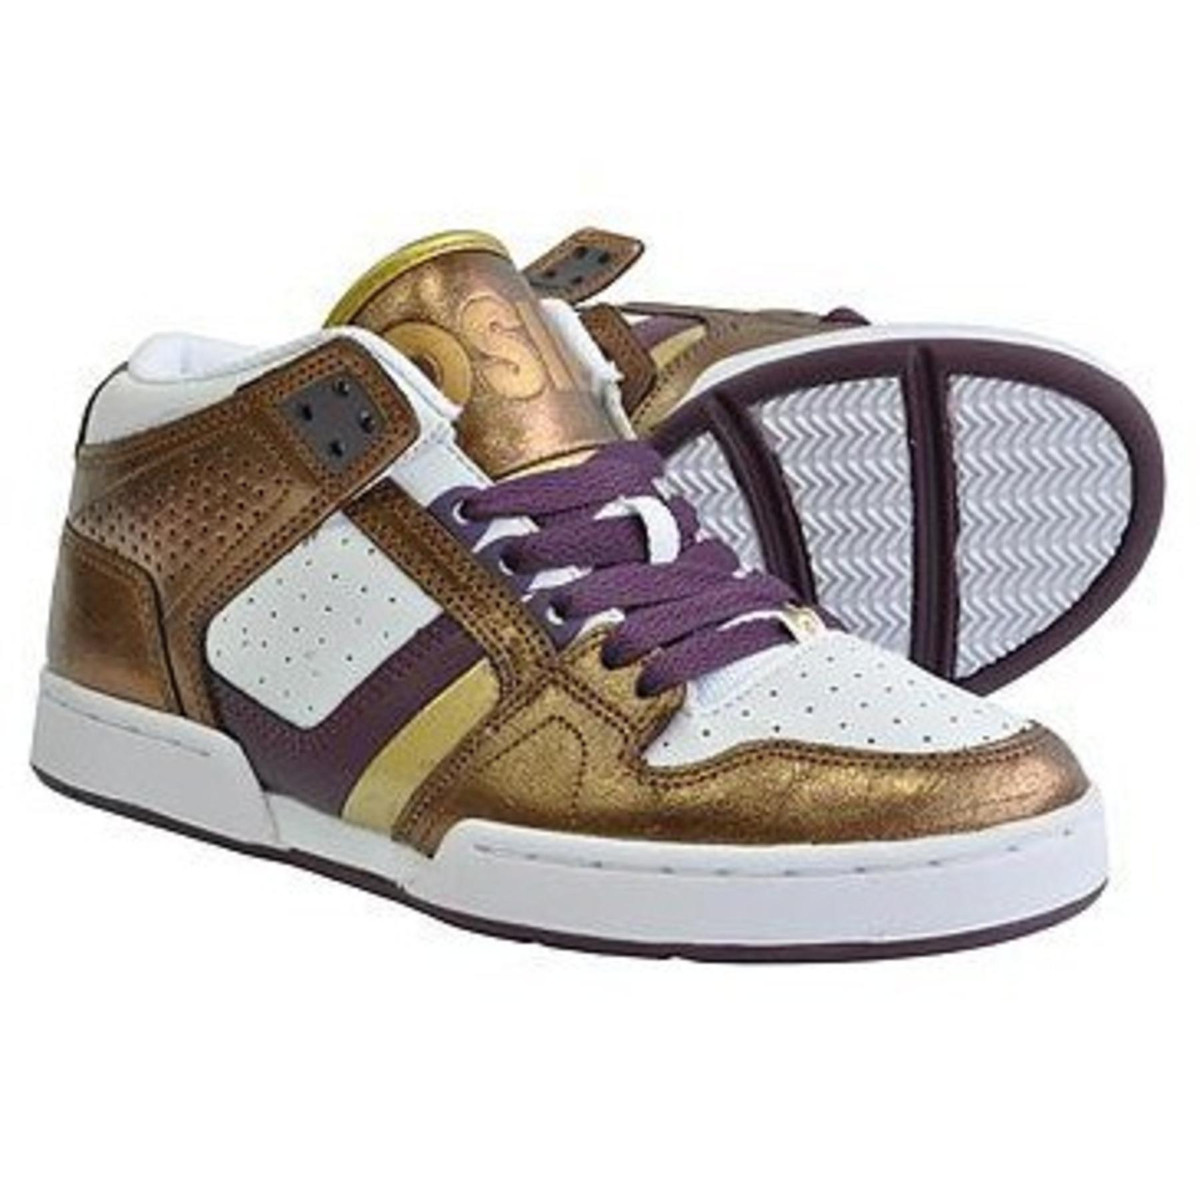 96804e840e6 Osiris Skateboard Schuhe South Bronx Girls Purple/White/Gold ...